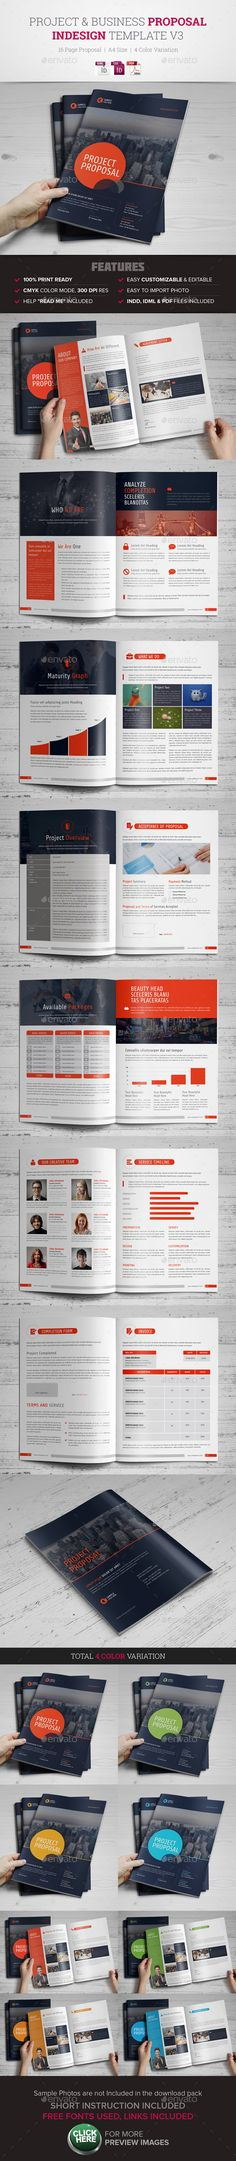 Project & Business Proposal Template v3